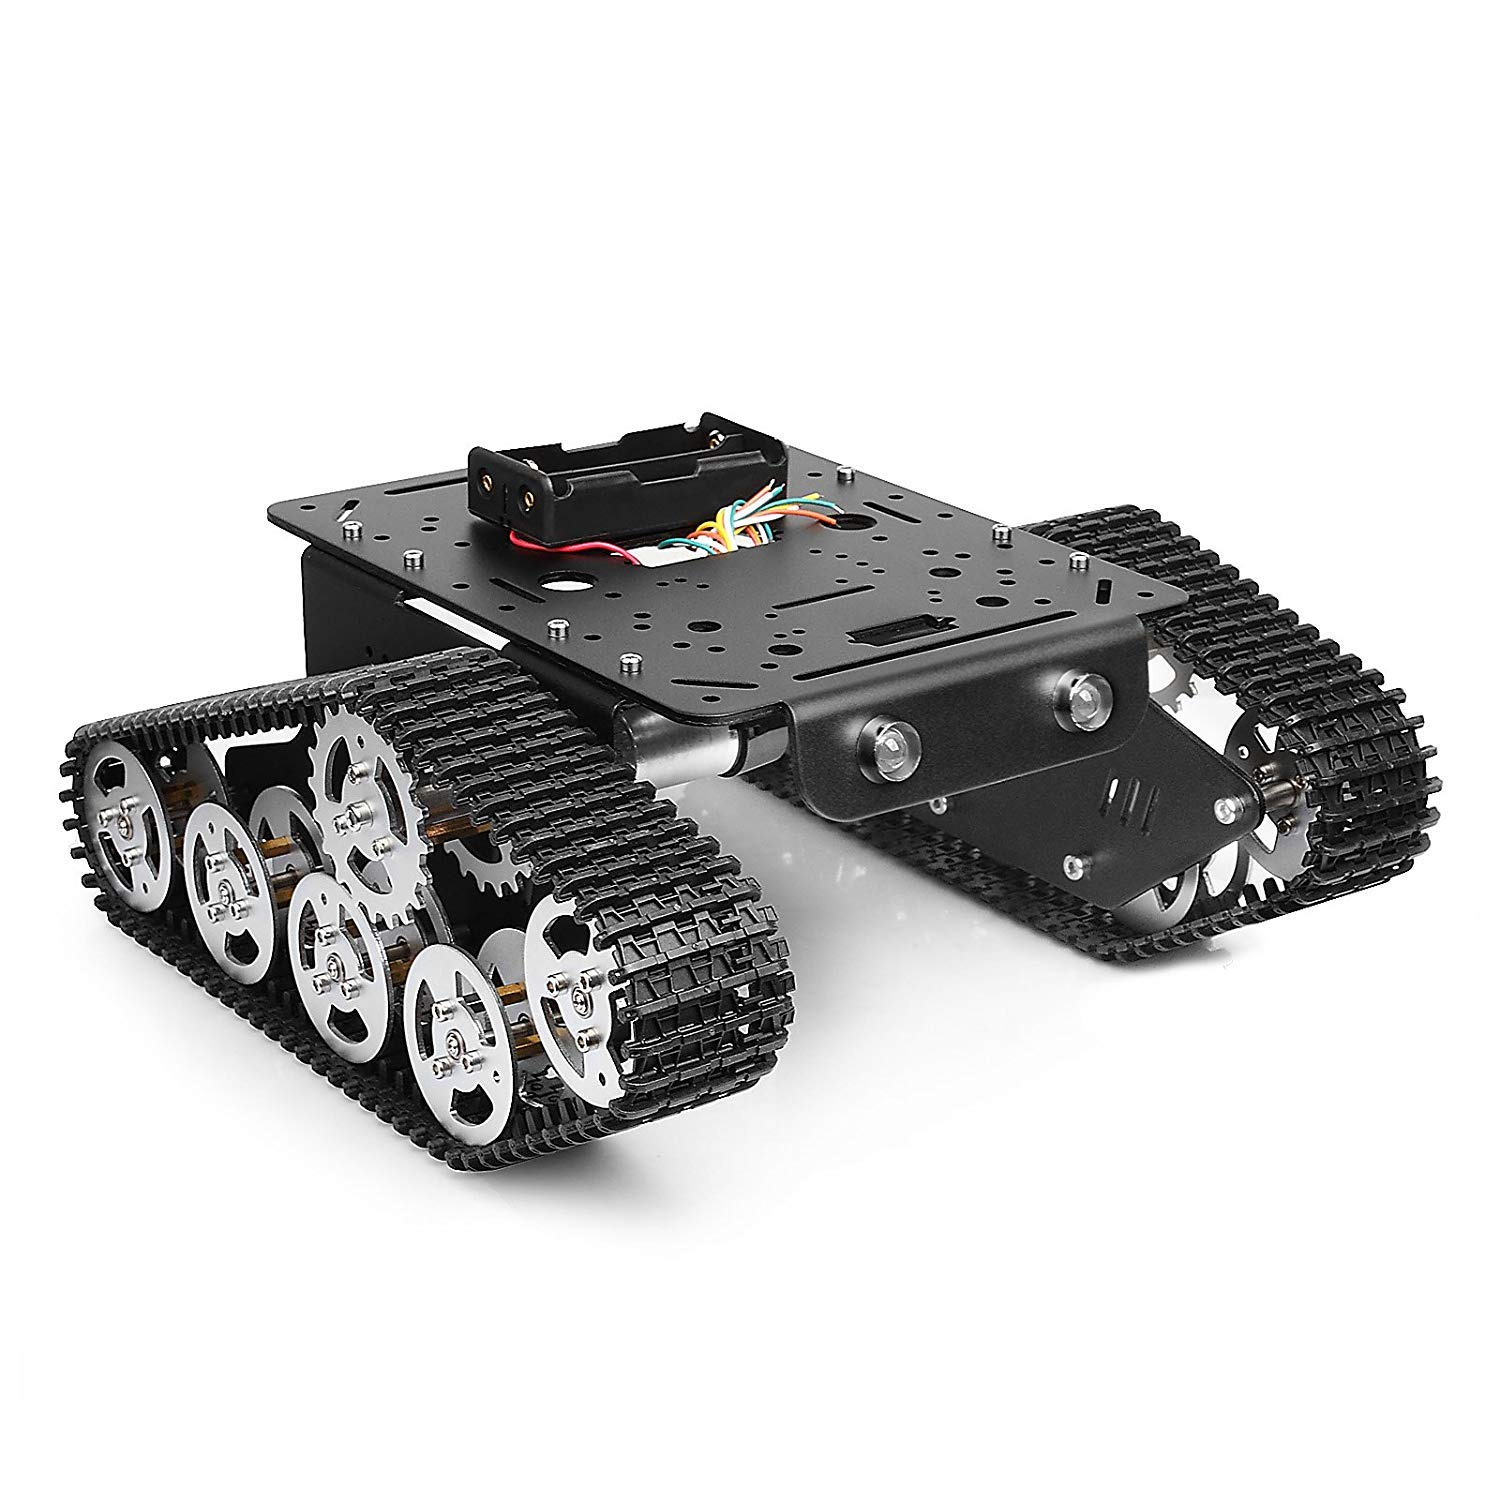 SZDoit Robot Tank Car Chassis Metal Stainless Platform with Speed Encoder Motor 9V Tracked Crawler for Arduino Raspberry Pi DIY